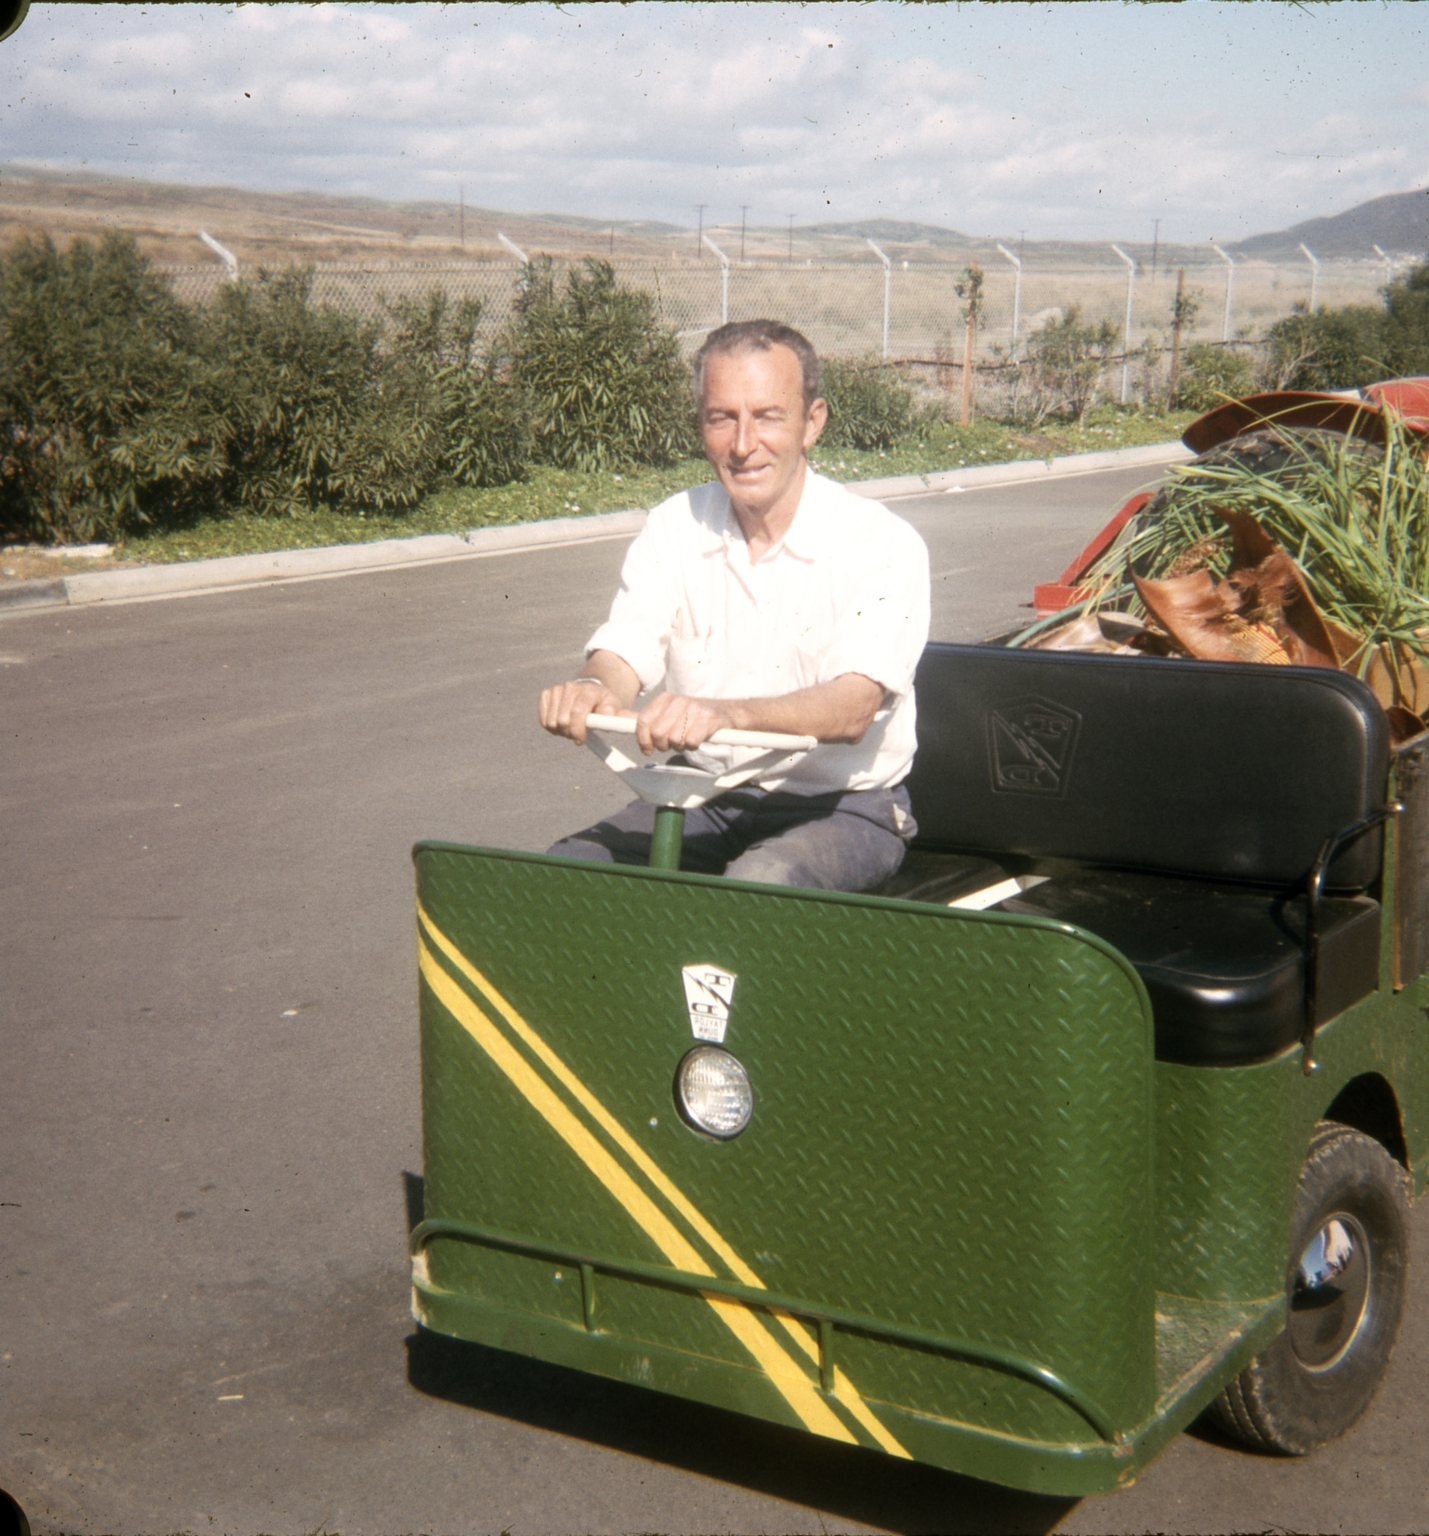 A employee of the Dana Strand Club sitting behind the wheel of an electric cart.